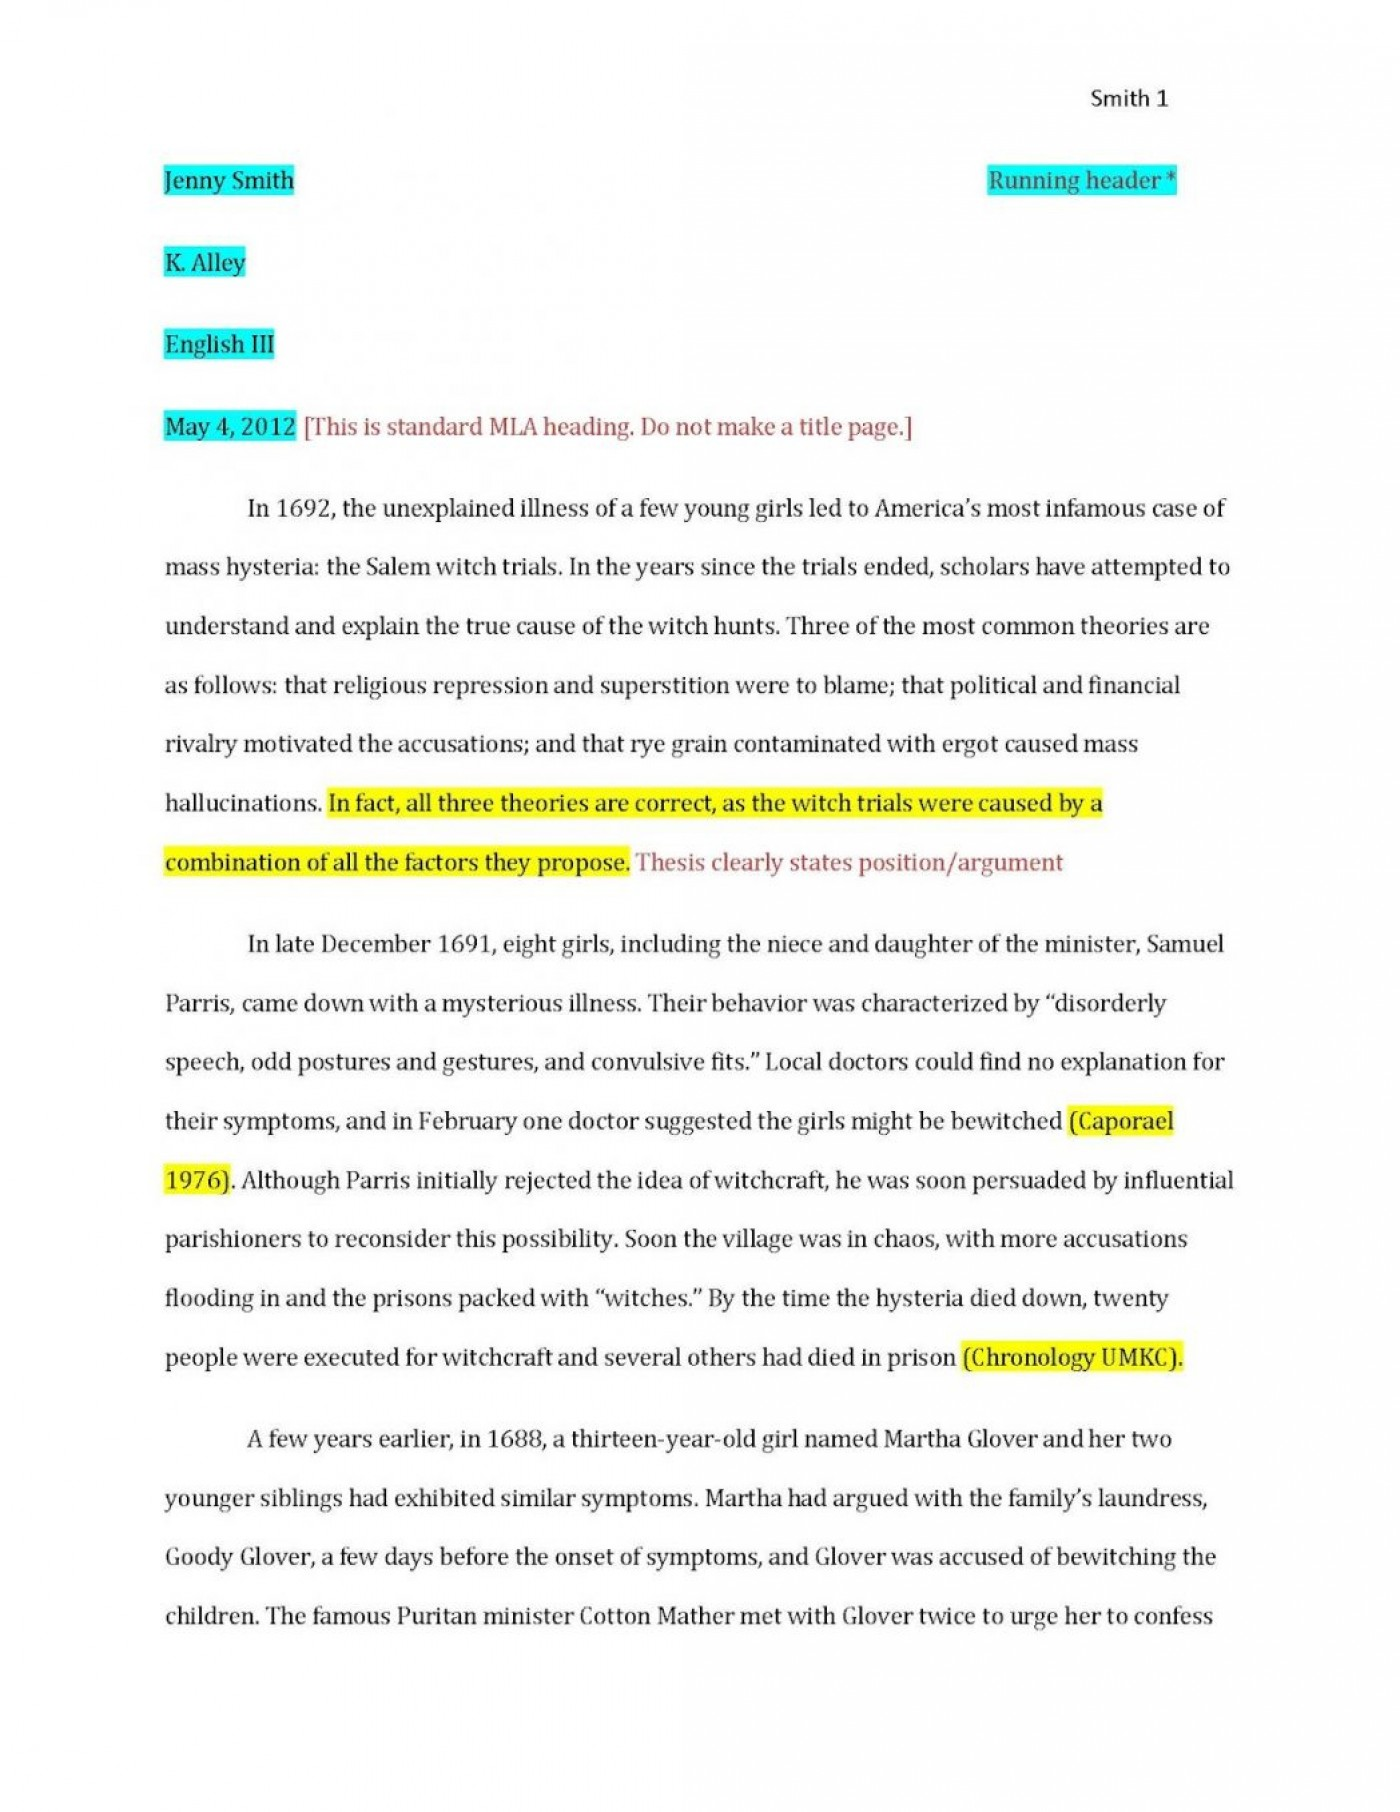 002 Mla Format Essay Generator Author Date References System Ready Set Automaticpaper P 1048x1357 Wondrous Bot Online Free Reviews 1400